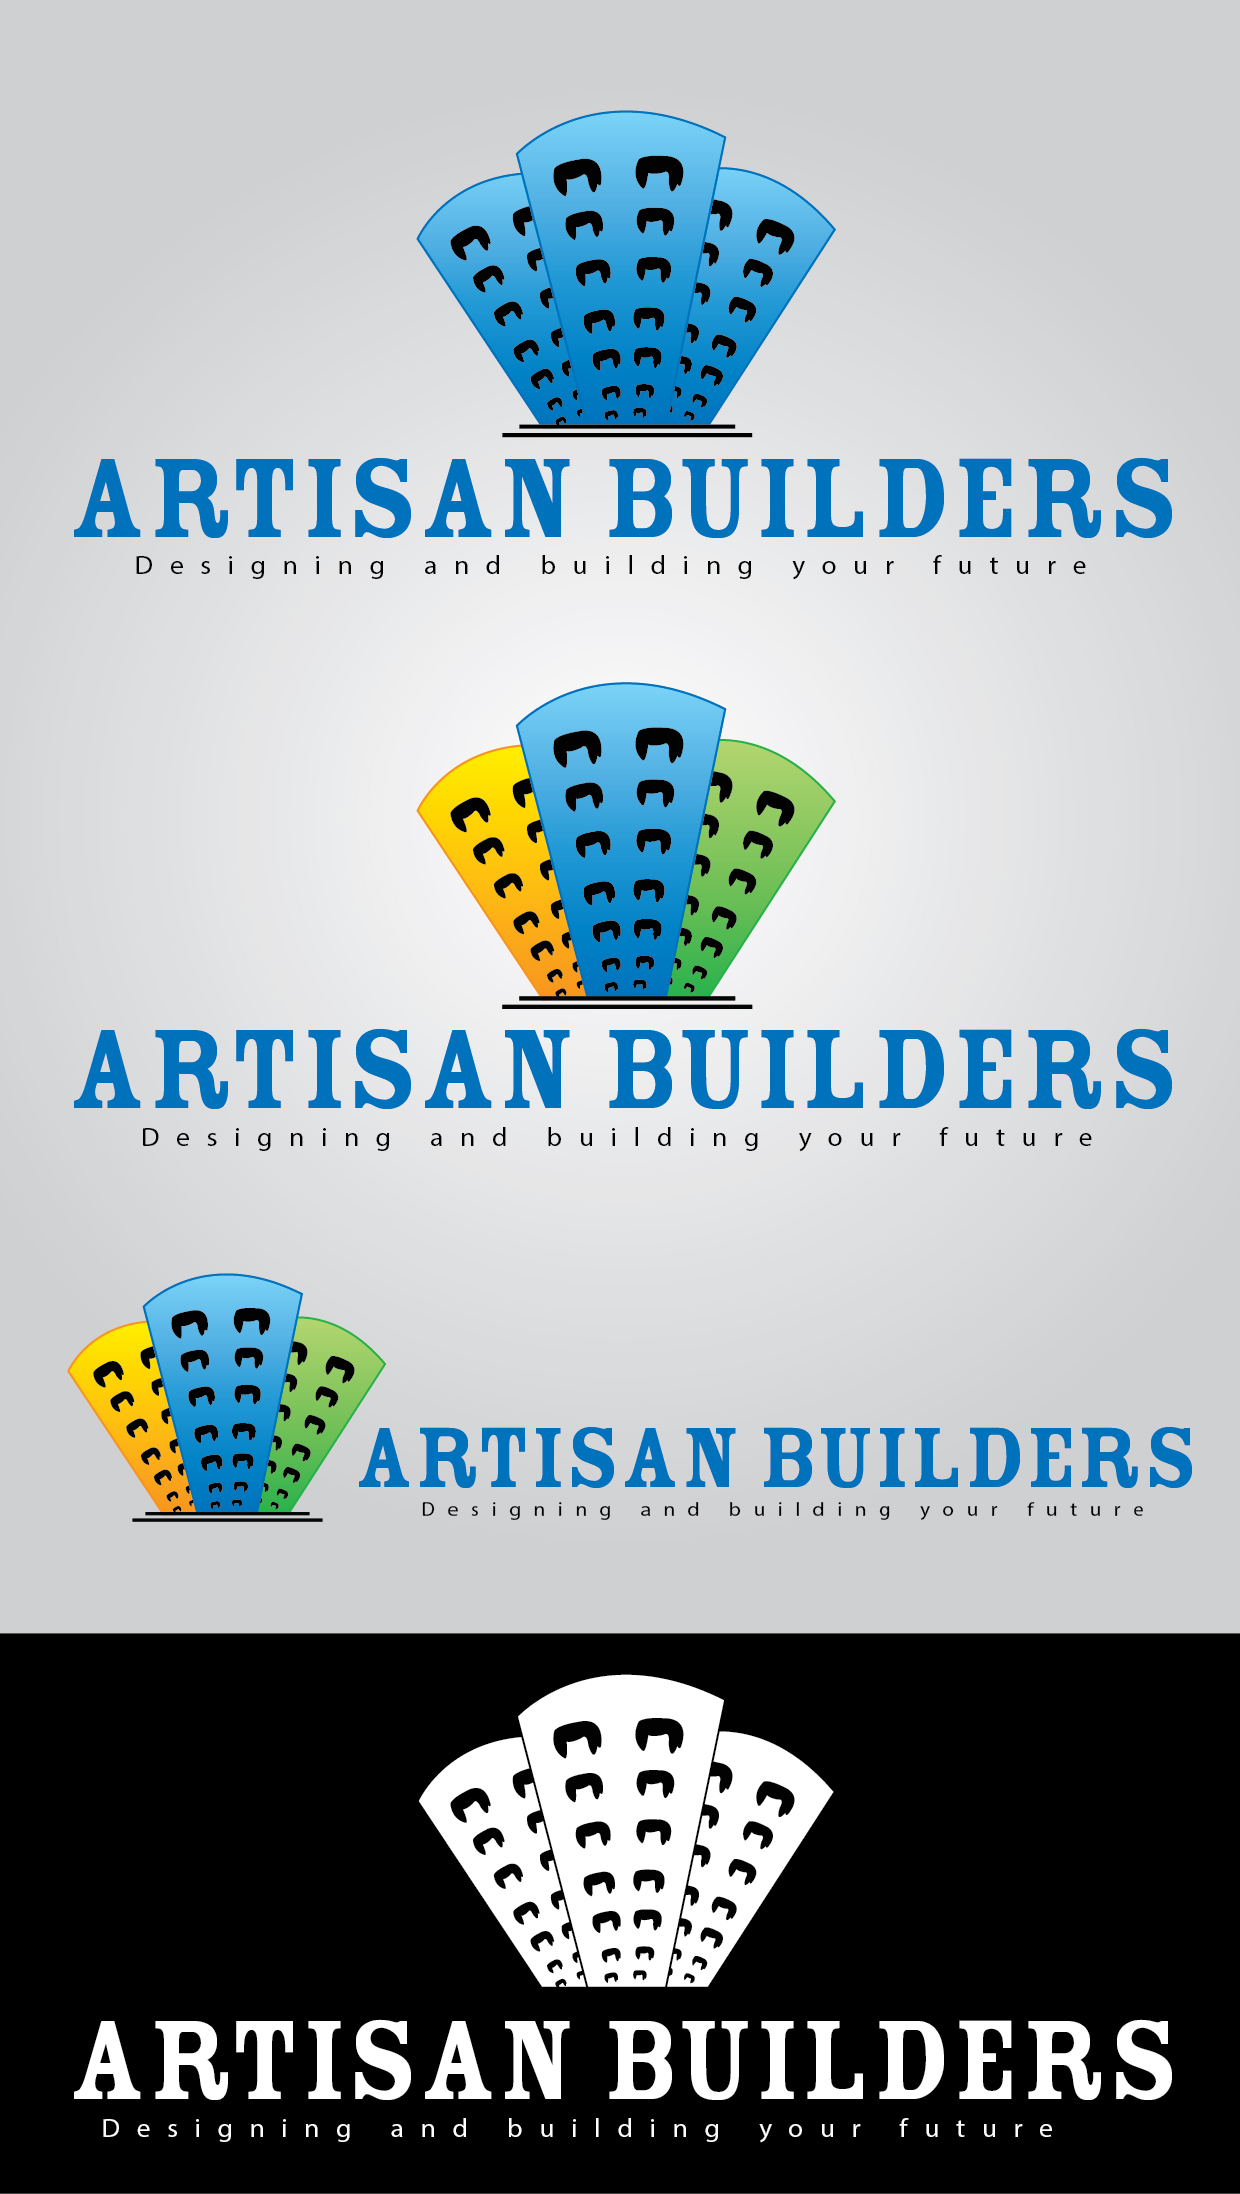 Logo Design by mediaproductionart - Entry No. 41 in the Logo Design Contest Captivating Logo Design for Artisan Builders.